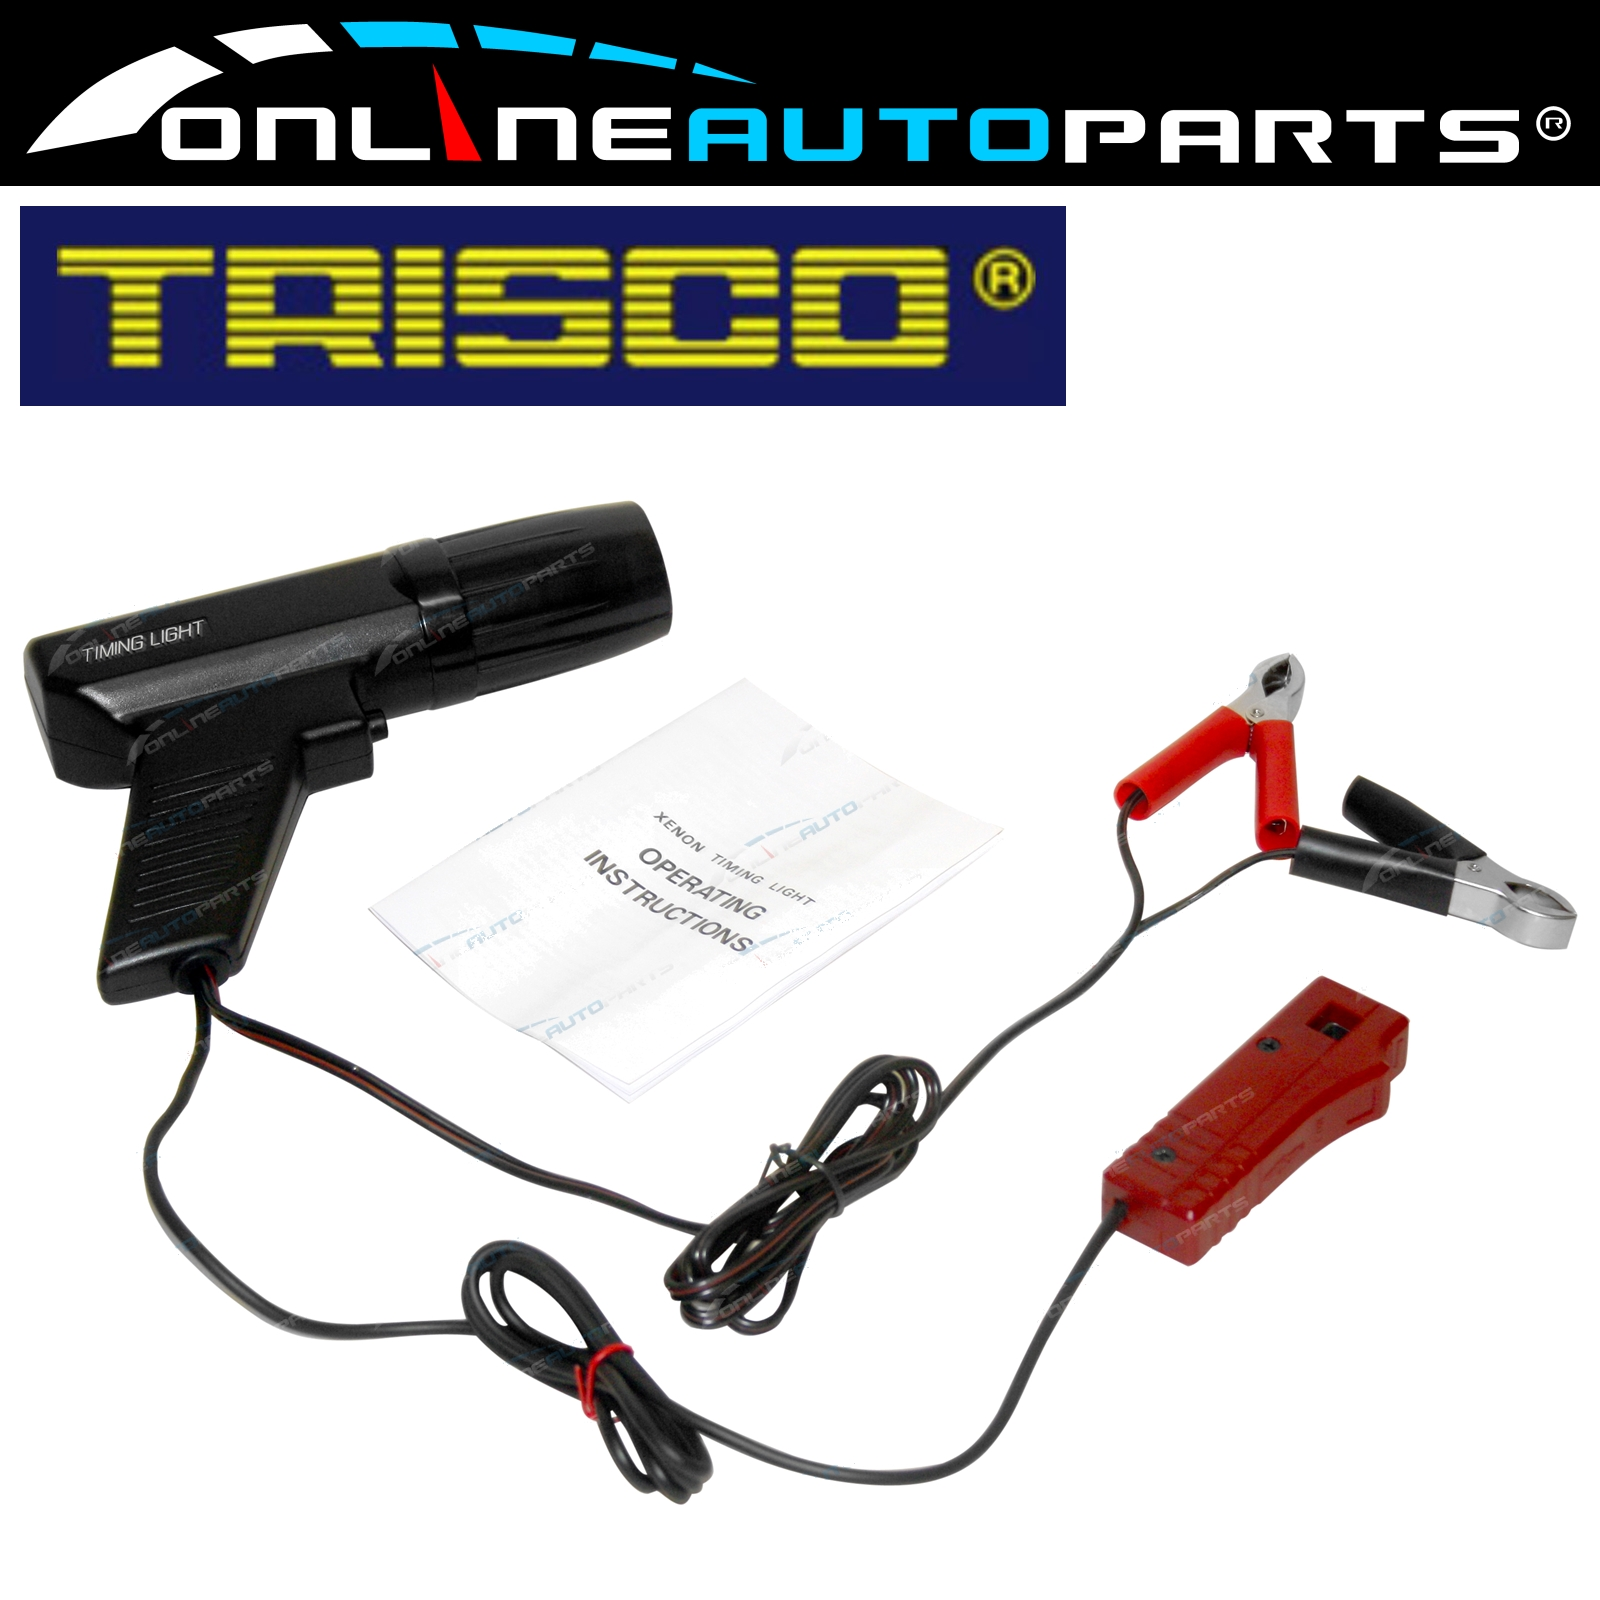 New Timing Light Inductive Pickup Ignition With Bright Xenon Strobe Alfa Romeo Auto Tool